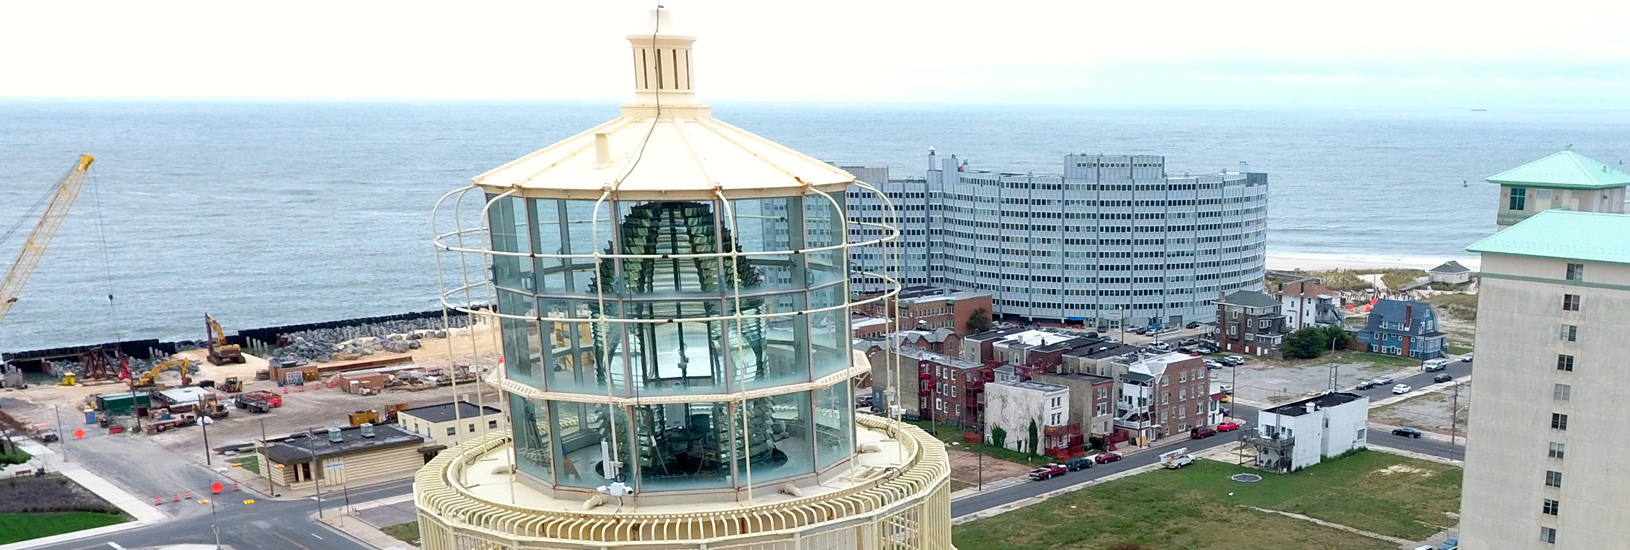 Lighthouse Lens from Drone